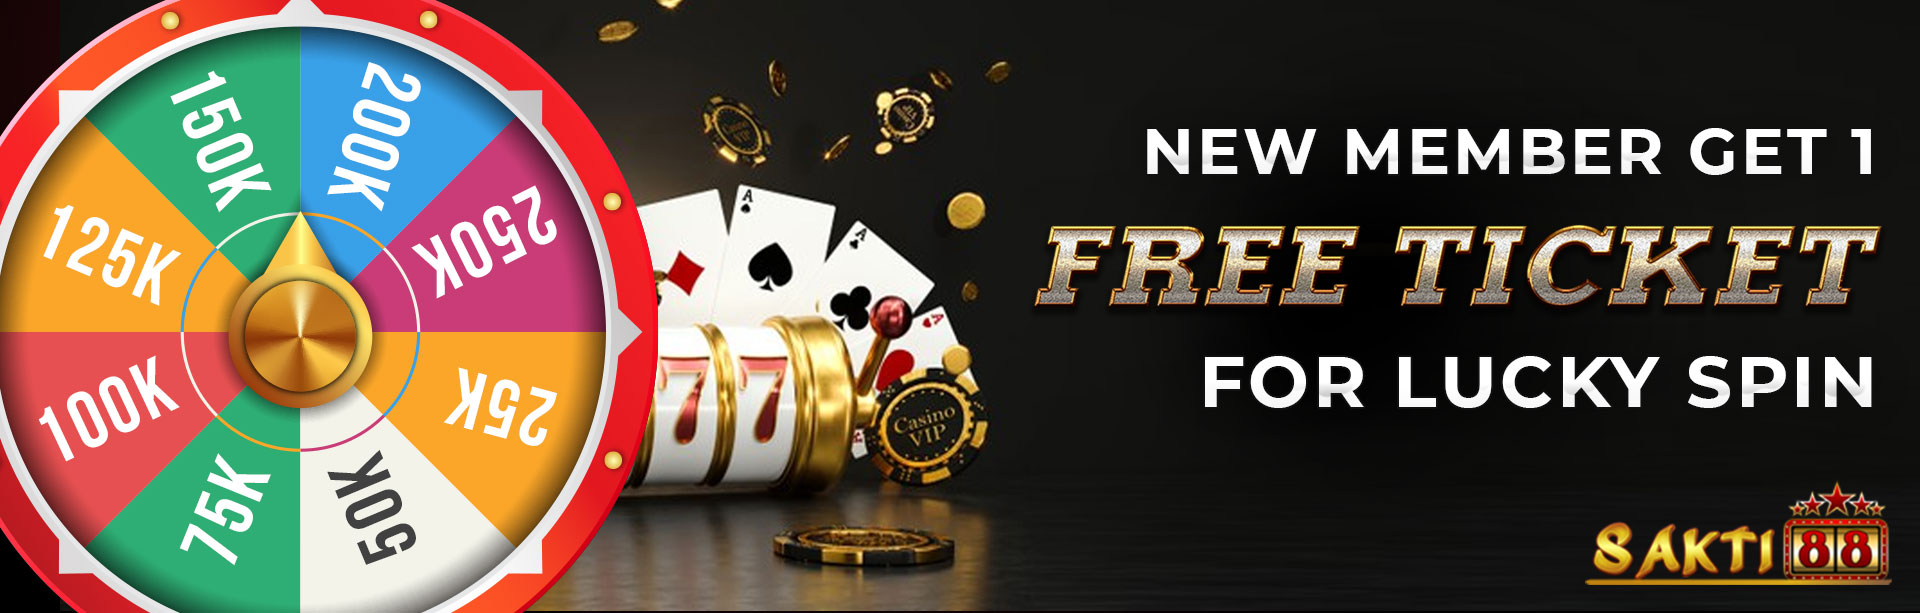 NEW MEMBER GET 1 FREE LUCKY SPIN TICKET